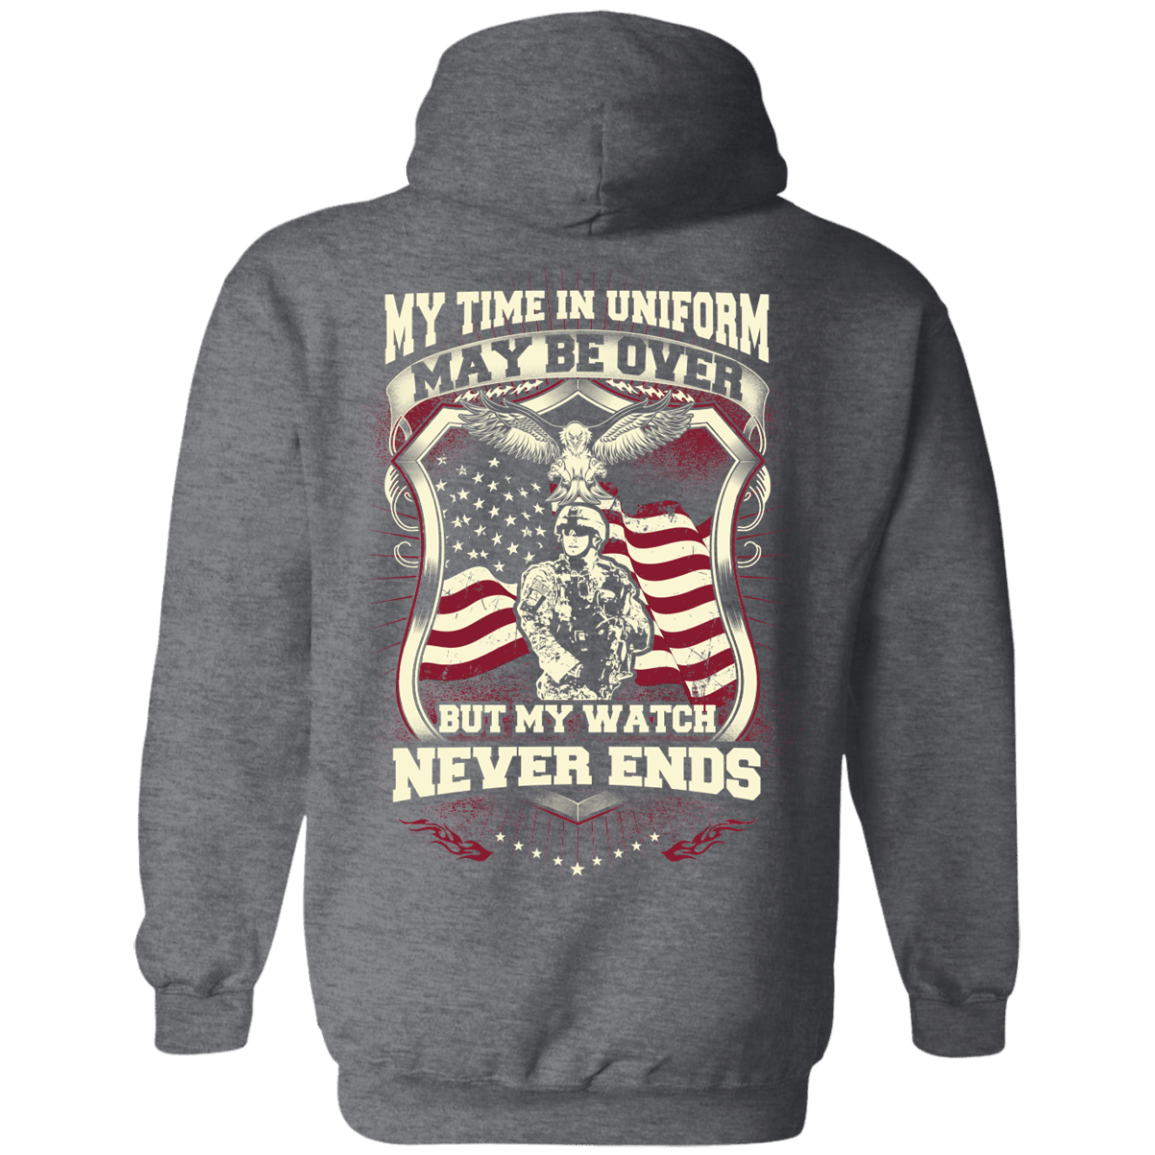 82adcb7bd5c My Time In Uniform May Be Over But My Watch Never Ends T shirt ...